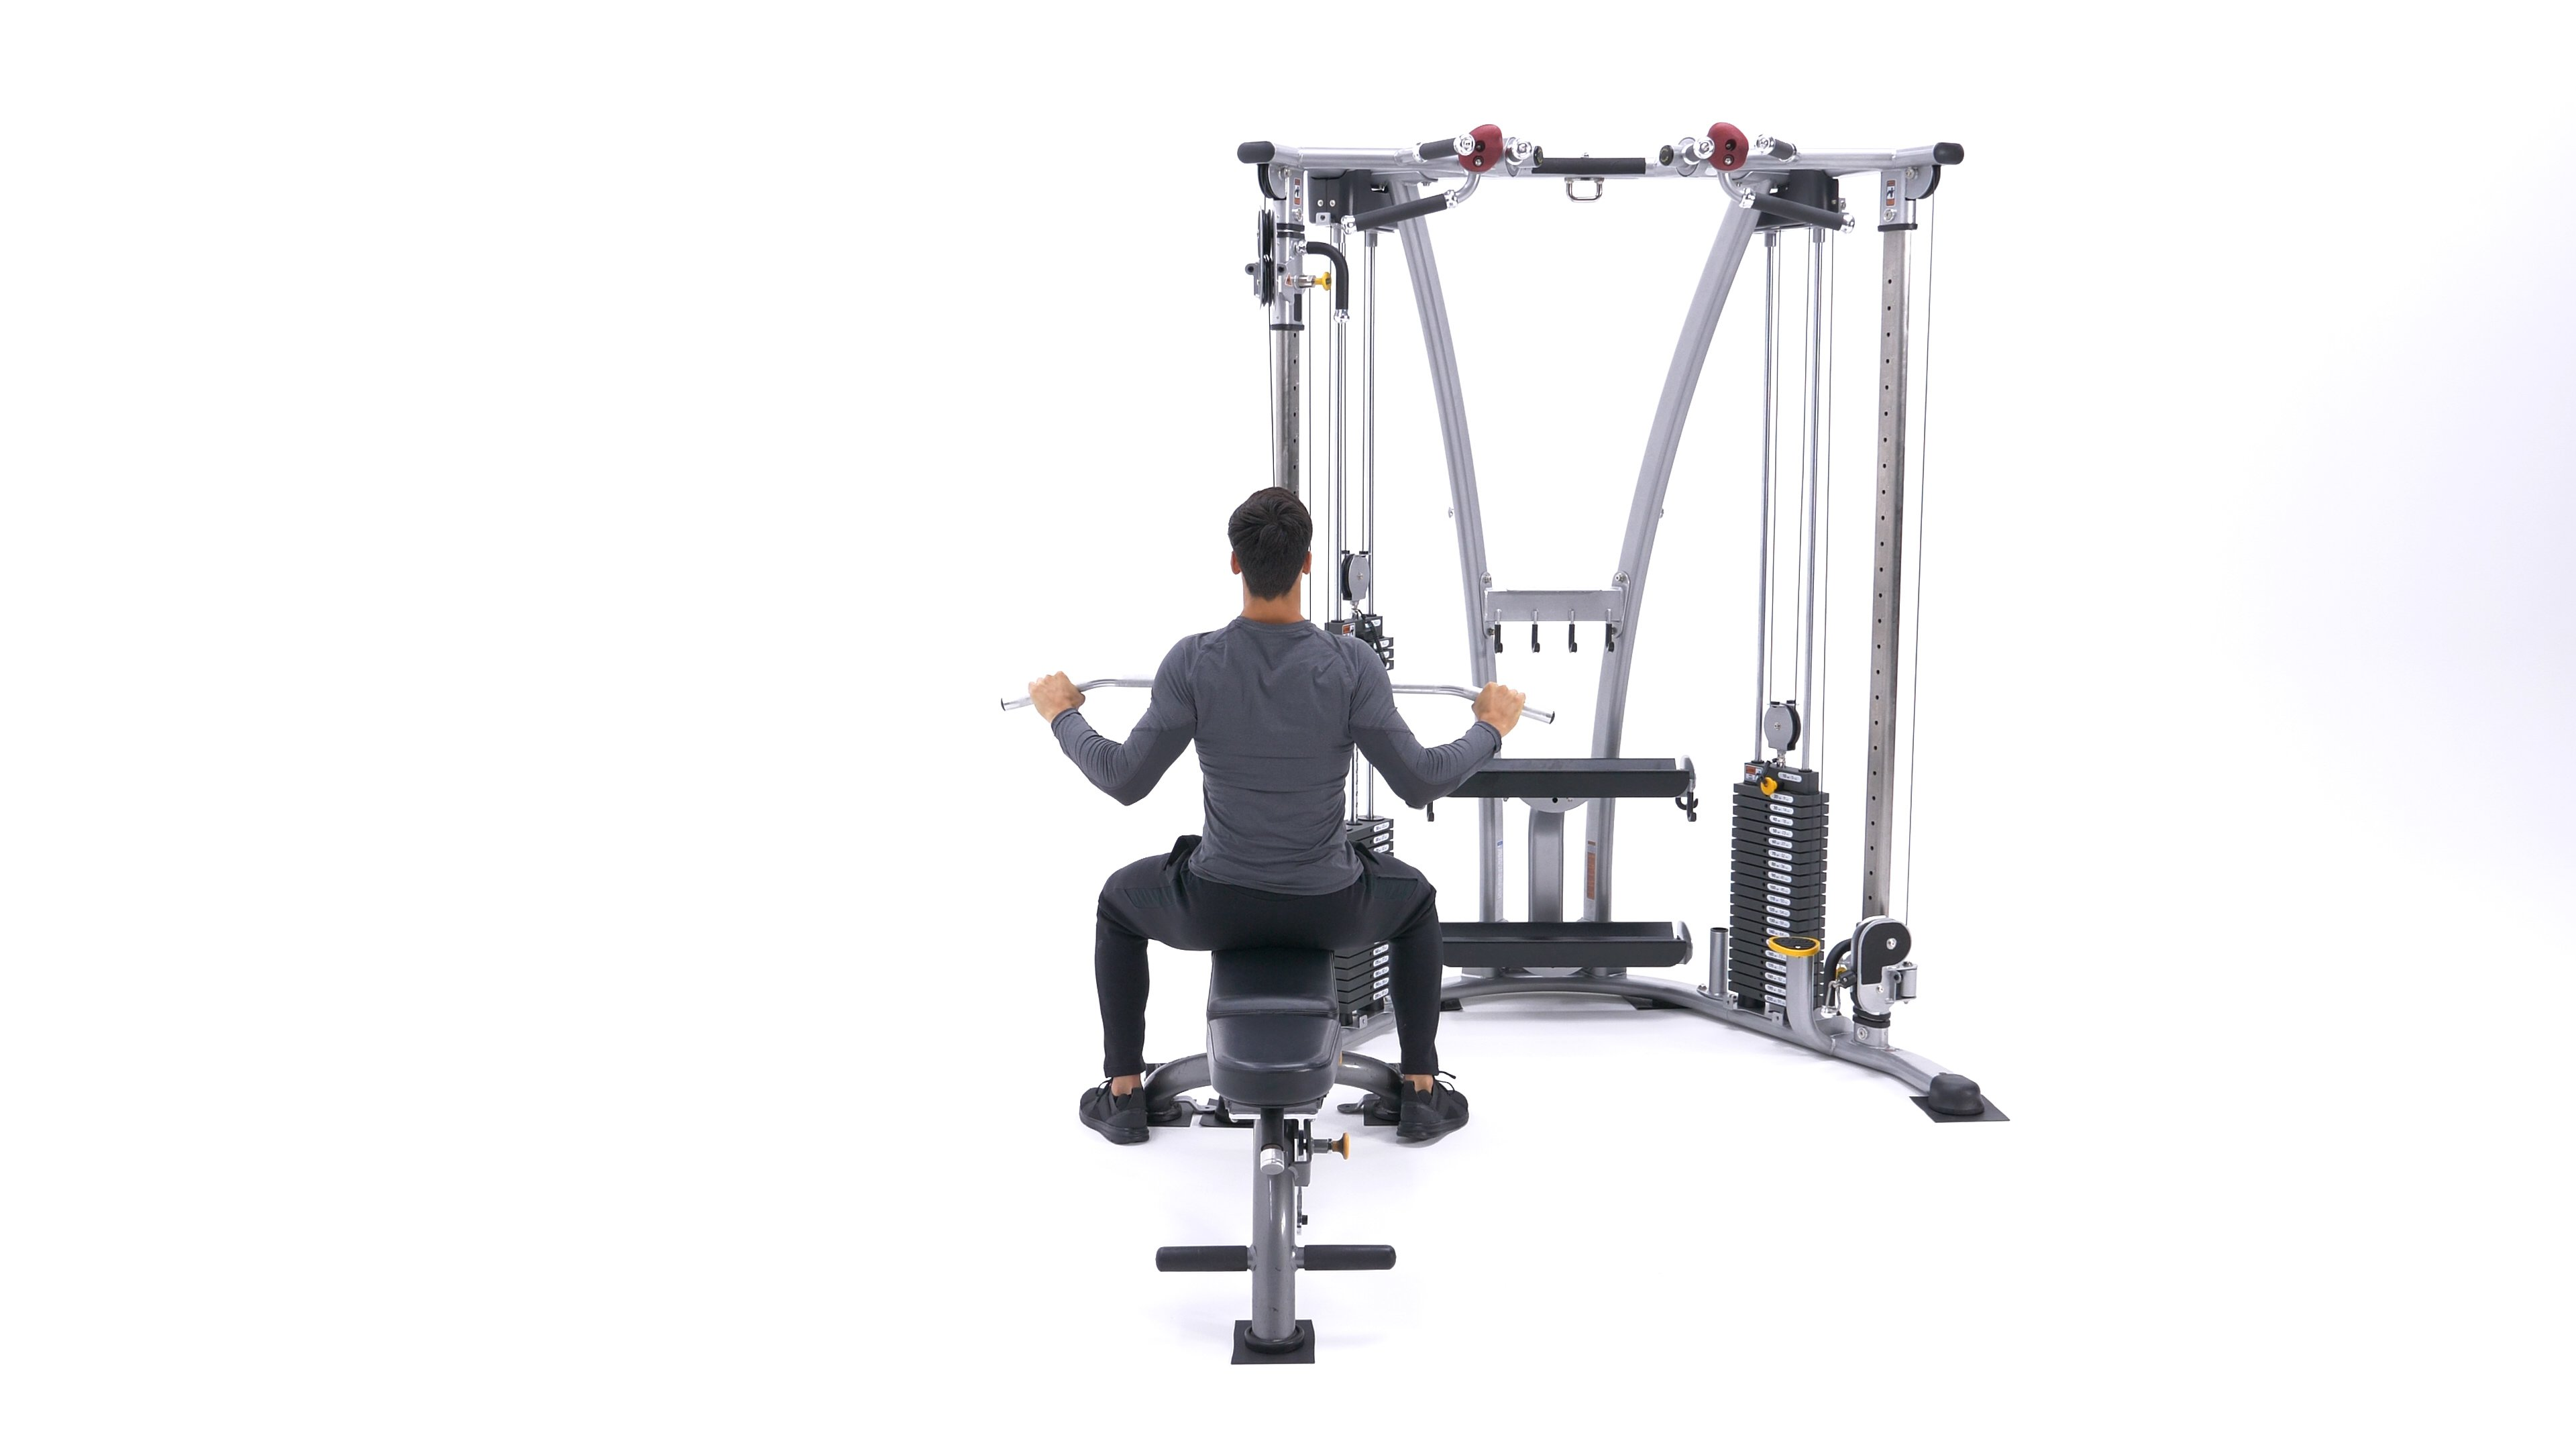 Lat pull-down image